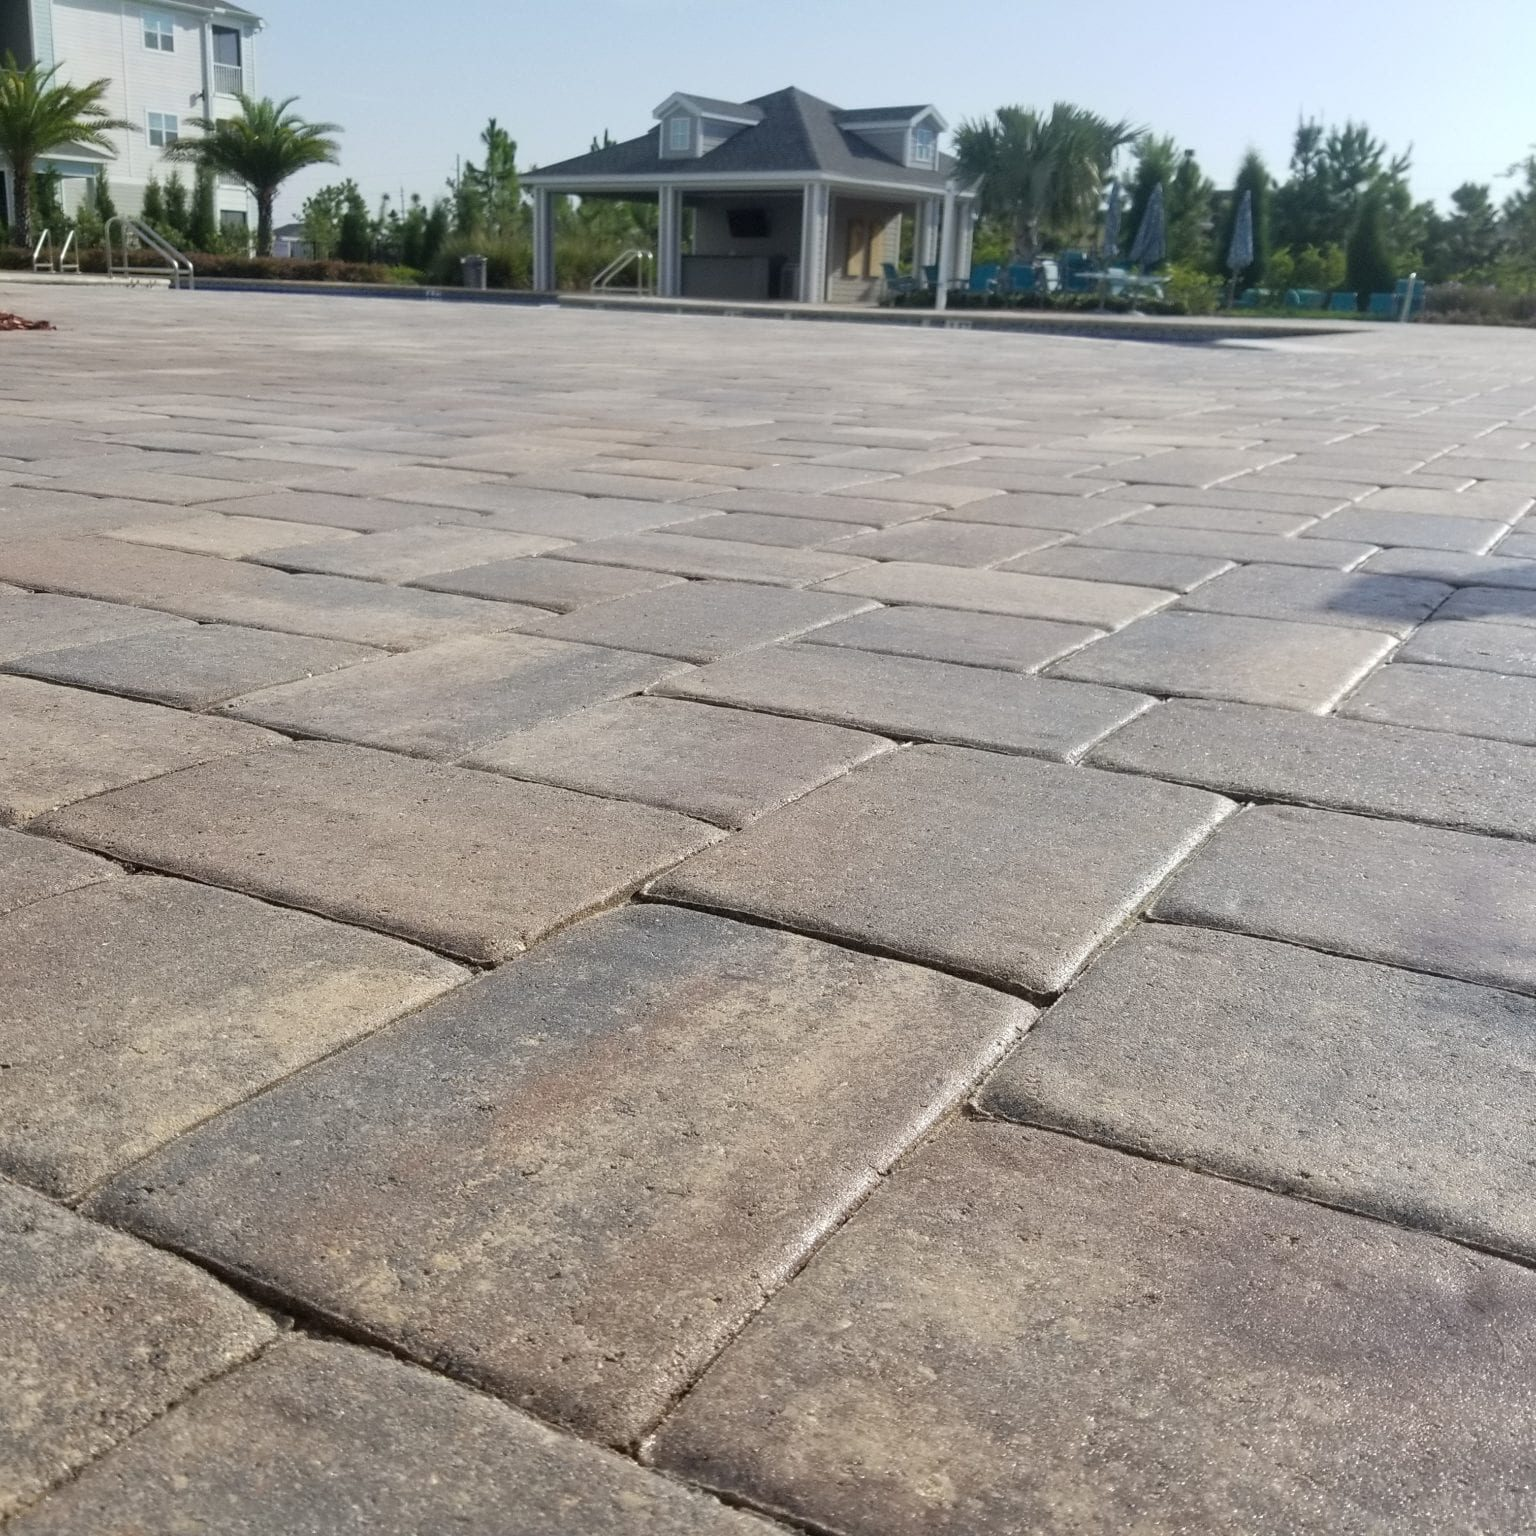 With the right maintenance plan in place, your pavers should last – and look beautiful – for years. Our paver sealing service is a key part of that maintenance plan. We always use a three-step process that will keep your pavers clean, attractive, and well-protected: